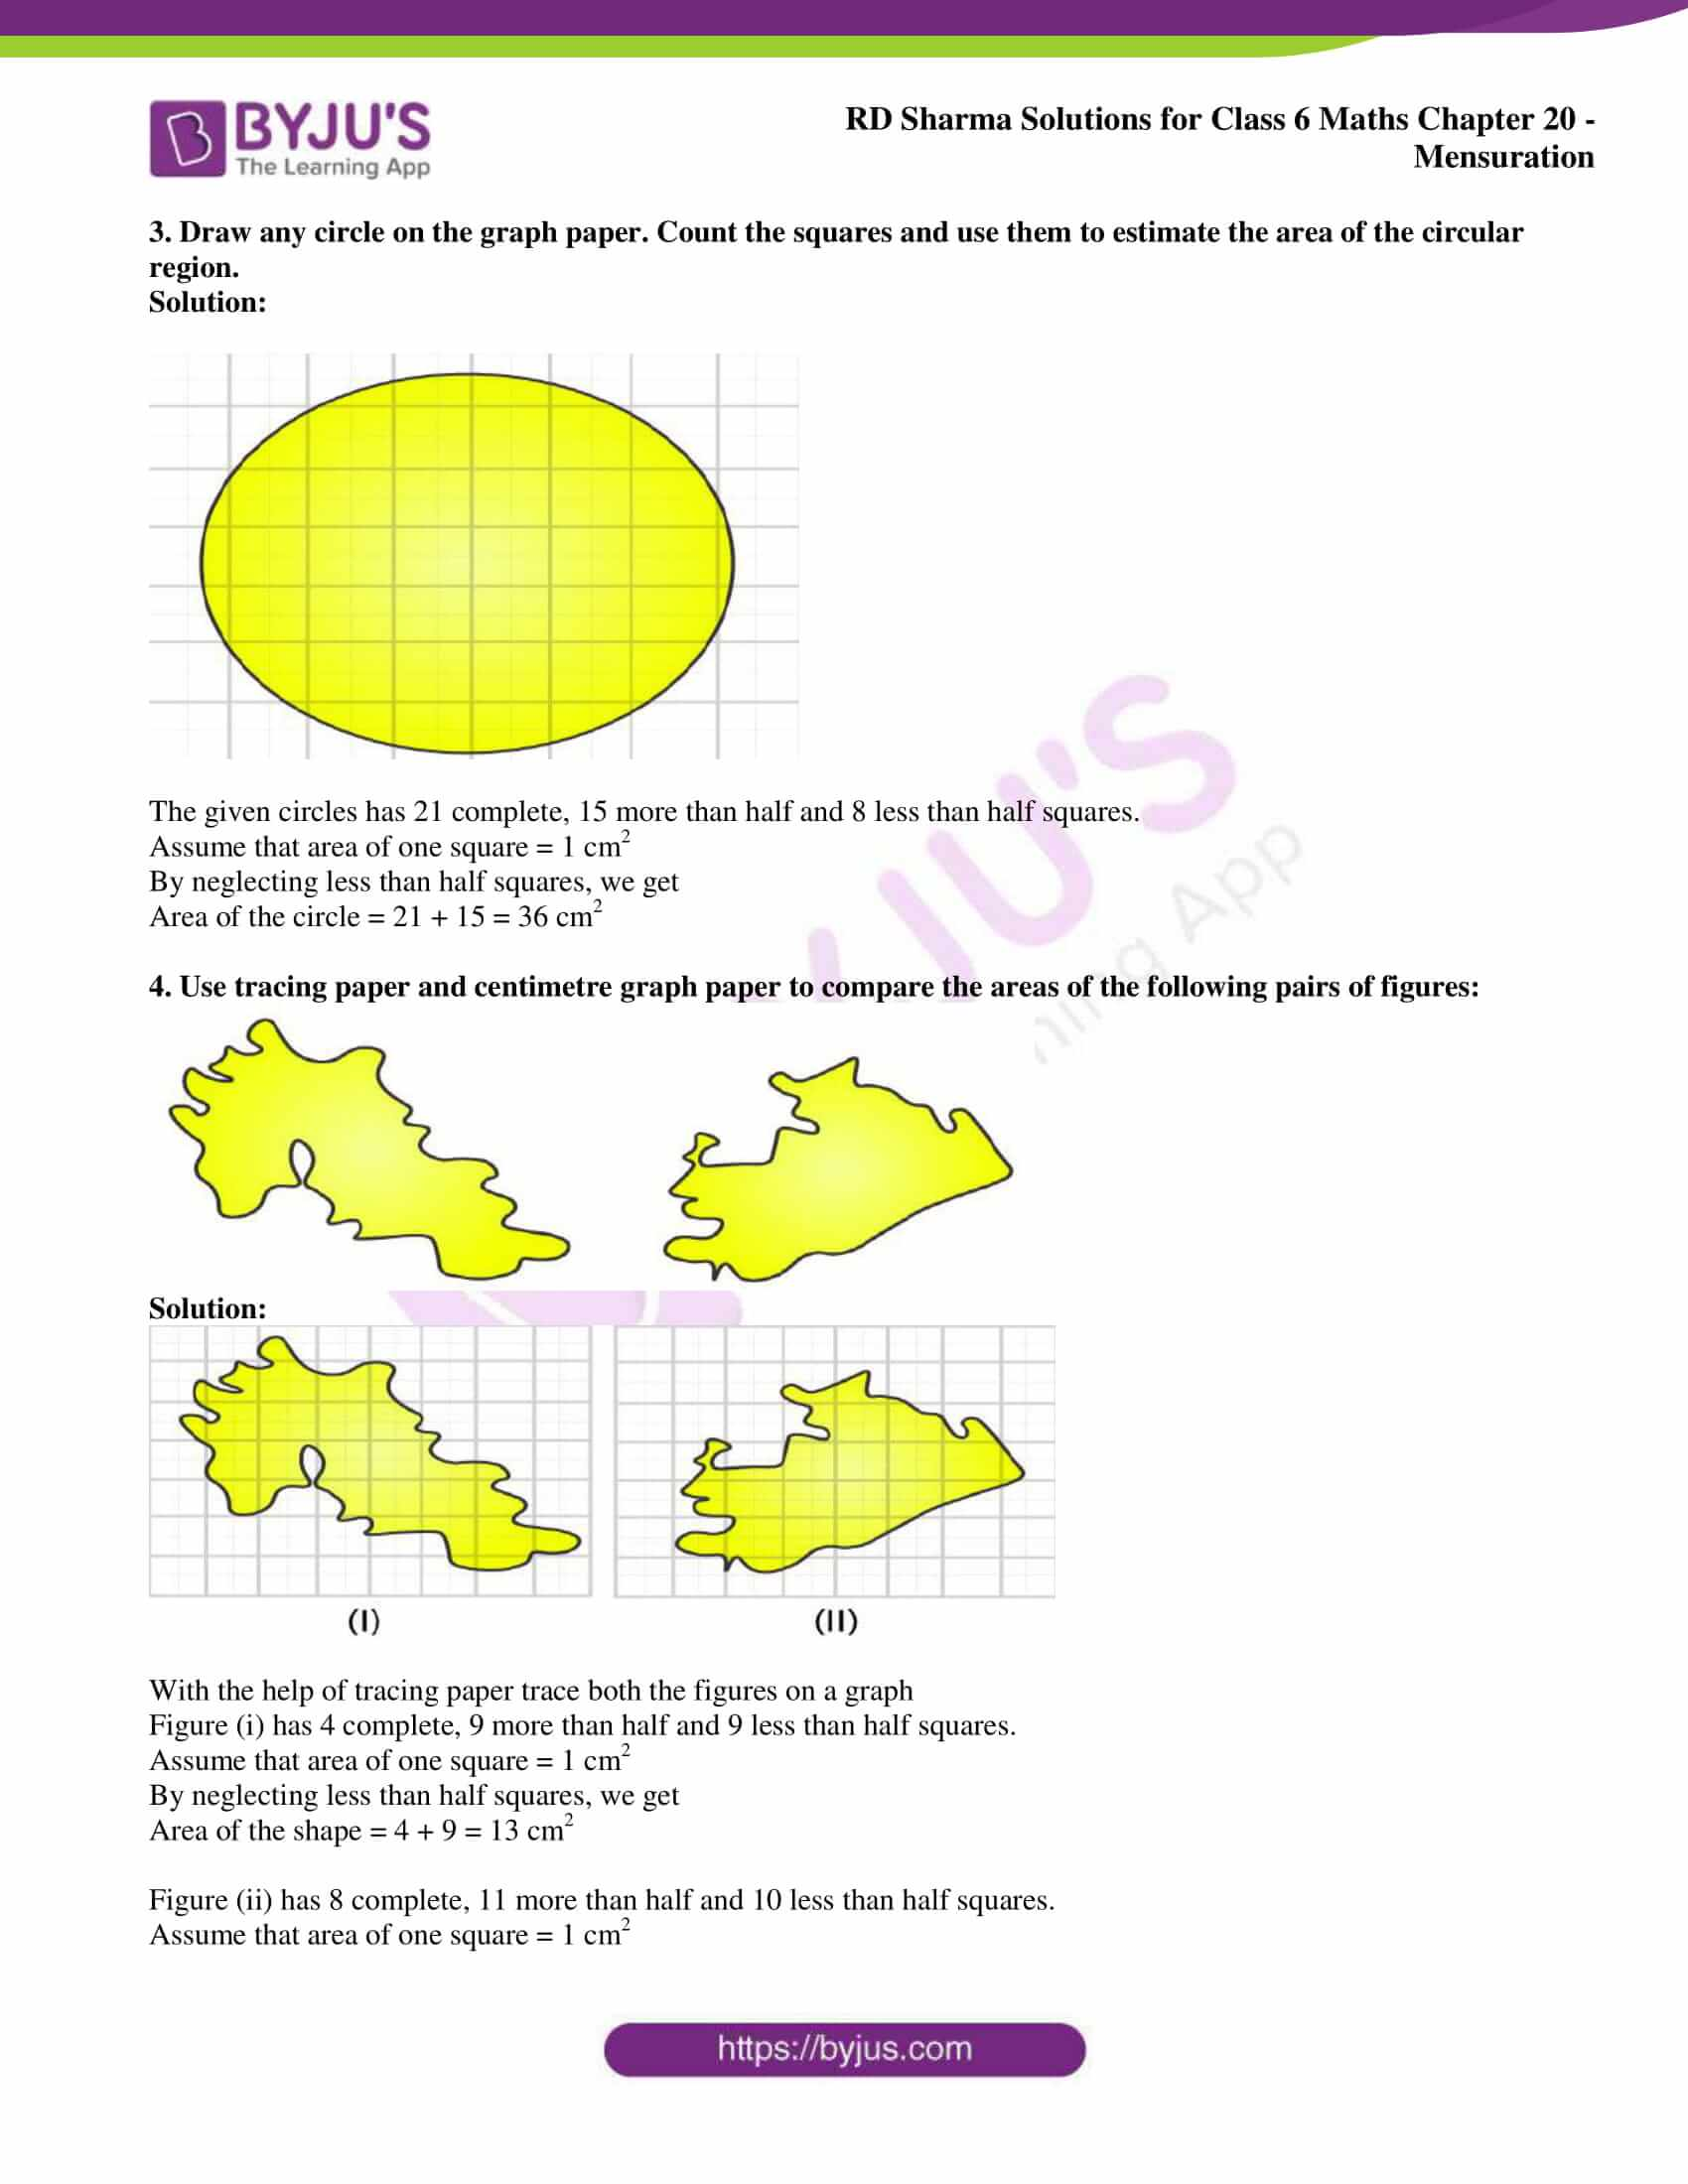 rd sharma solutions nov2020 class 6 maths chapter 20 exercise 3 3